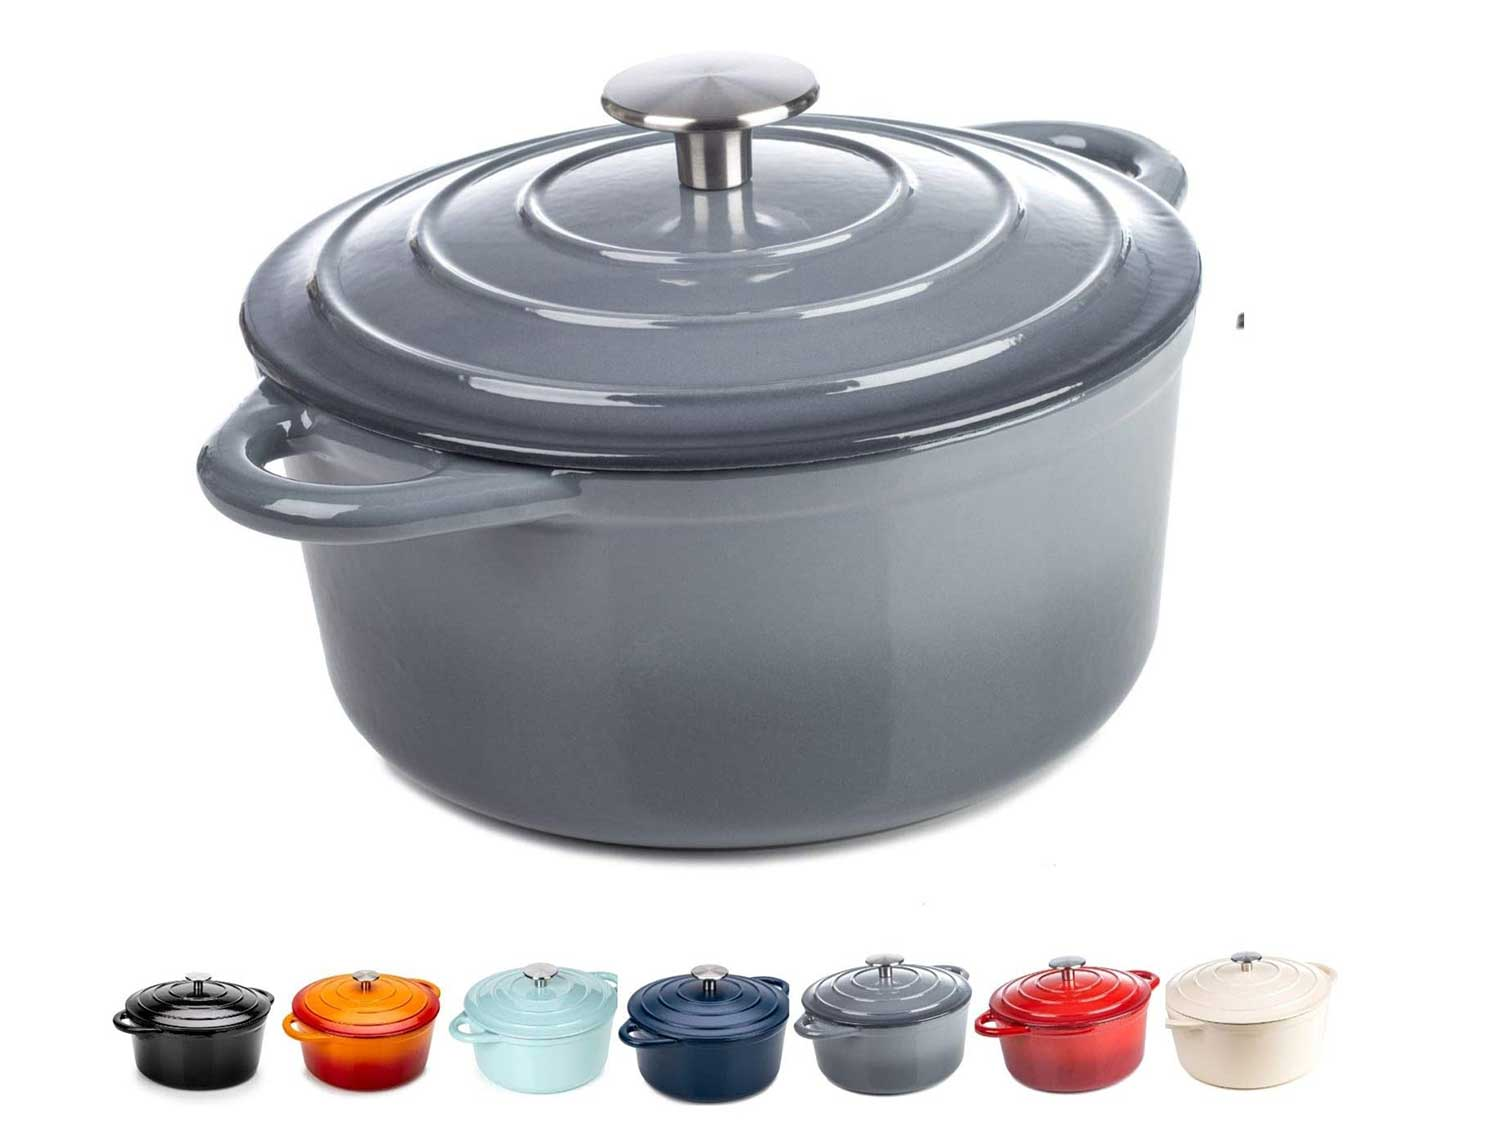 Round Casserole Dish - Cast Iron Ceramic Induction and Gas Safe Non Stick Dutch Oven Roasting Cooker - with Lid - 30cm - 10 Year Gurantee (5.2L Casserole, Grey)